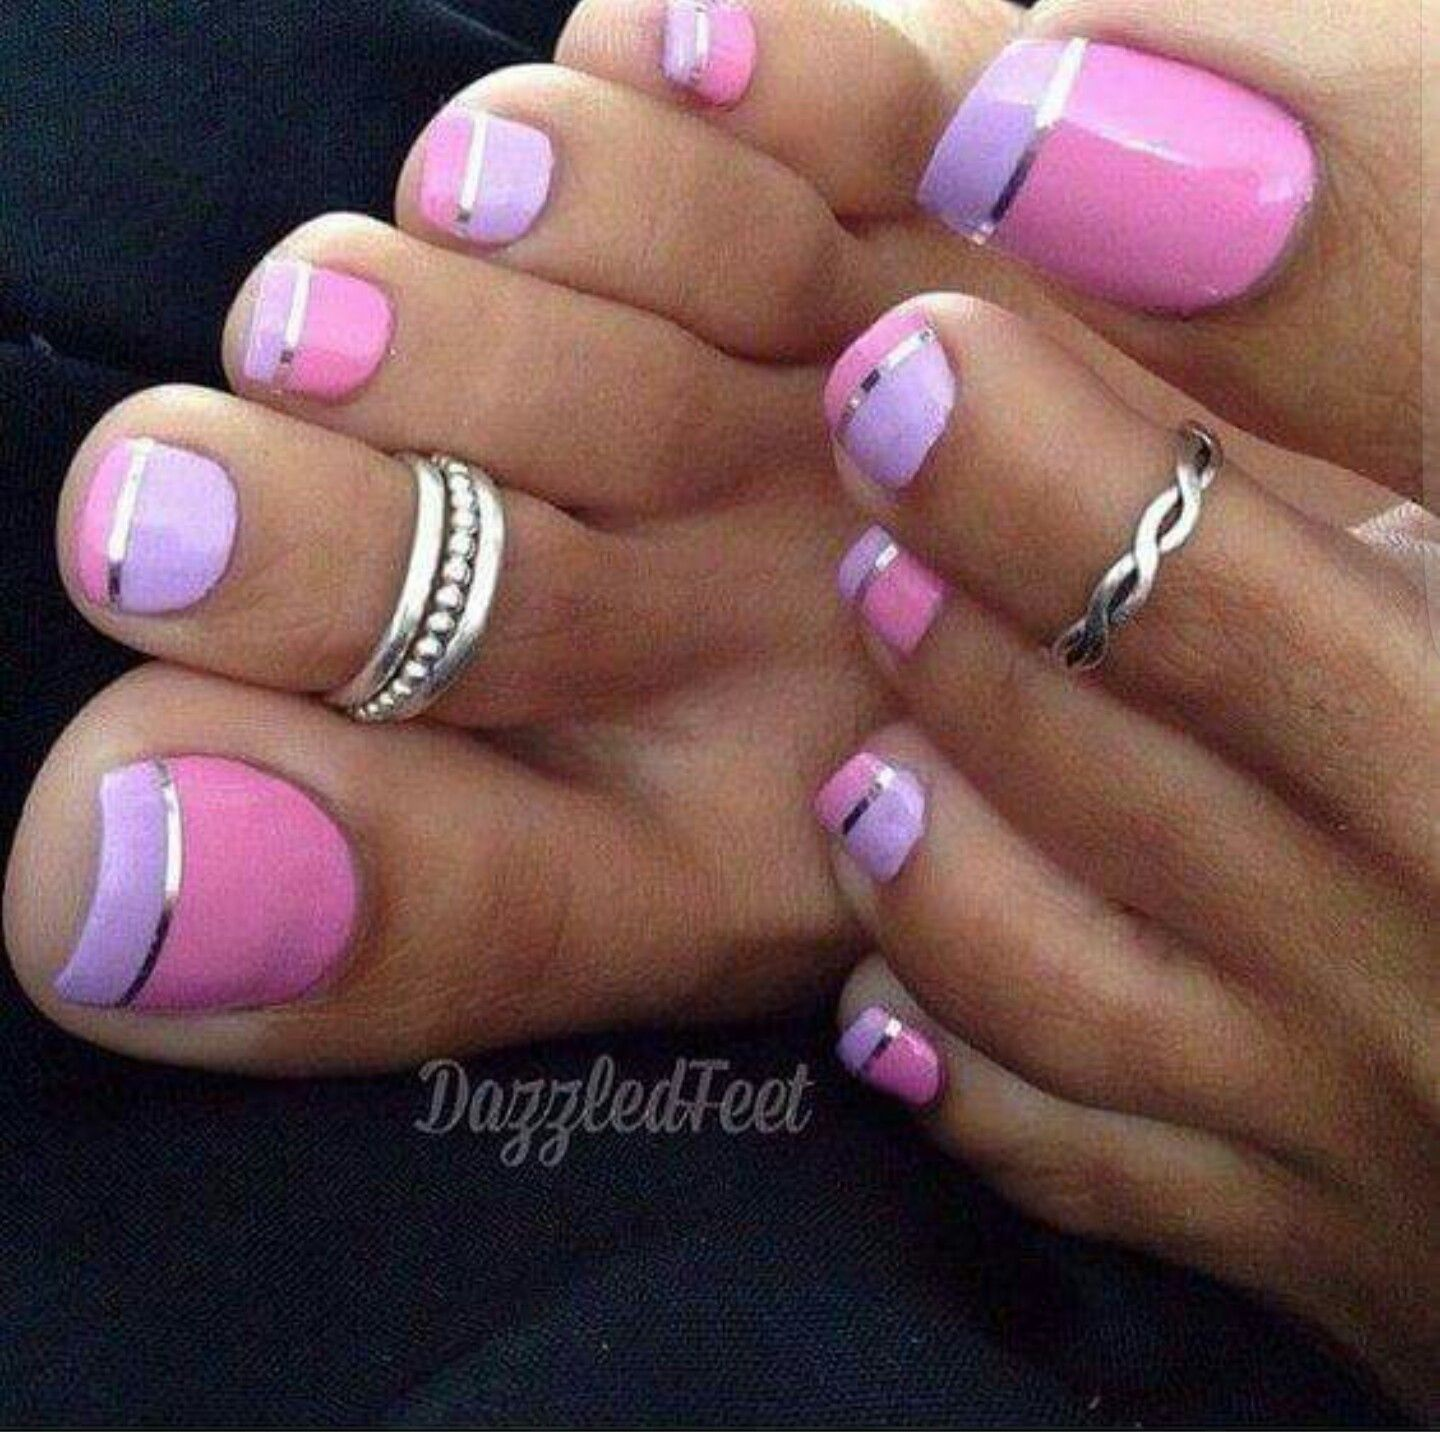 Pin by Jasmine Nicole♡ on Nails | Pinterest | Pedicures, Pedi and ...